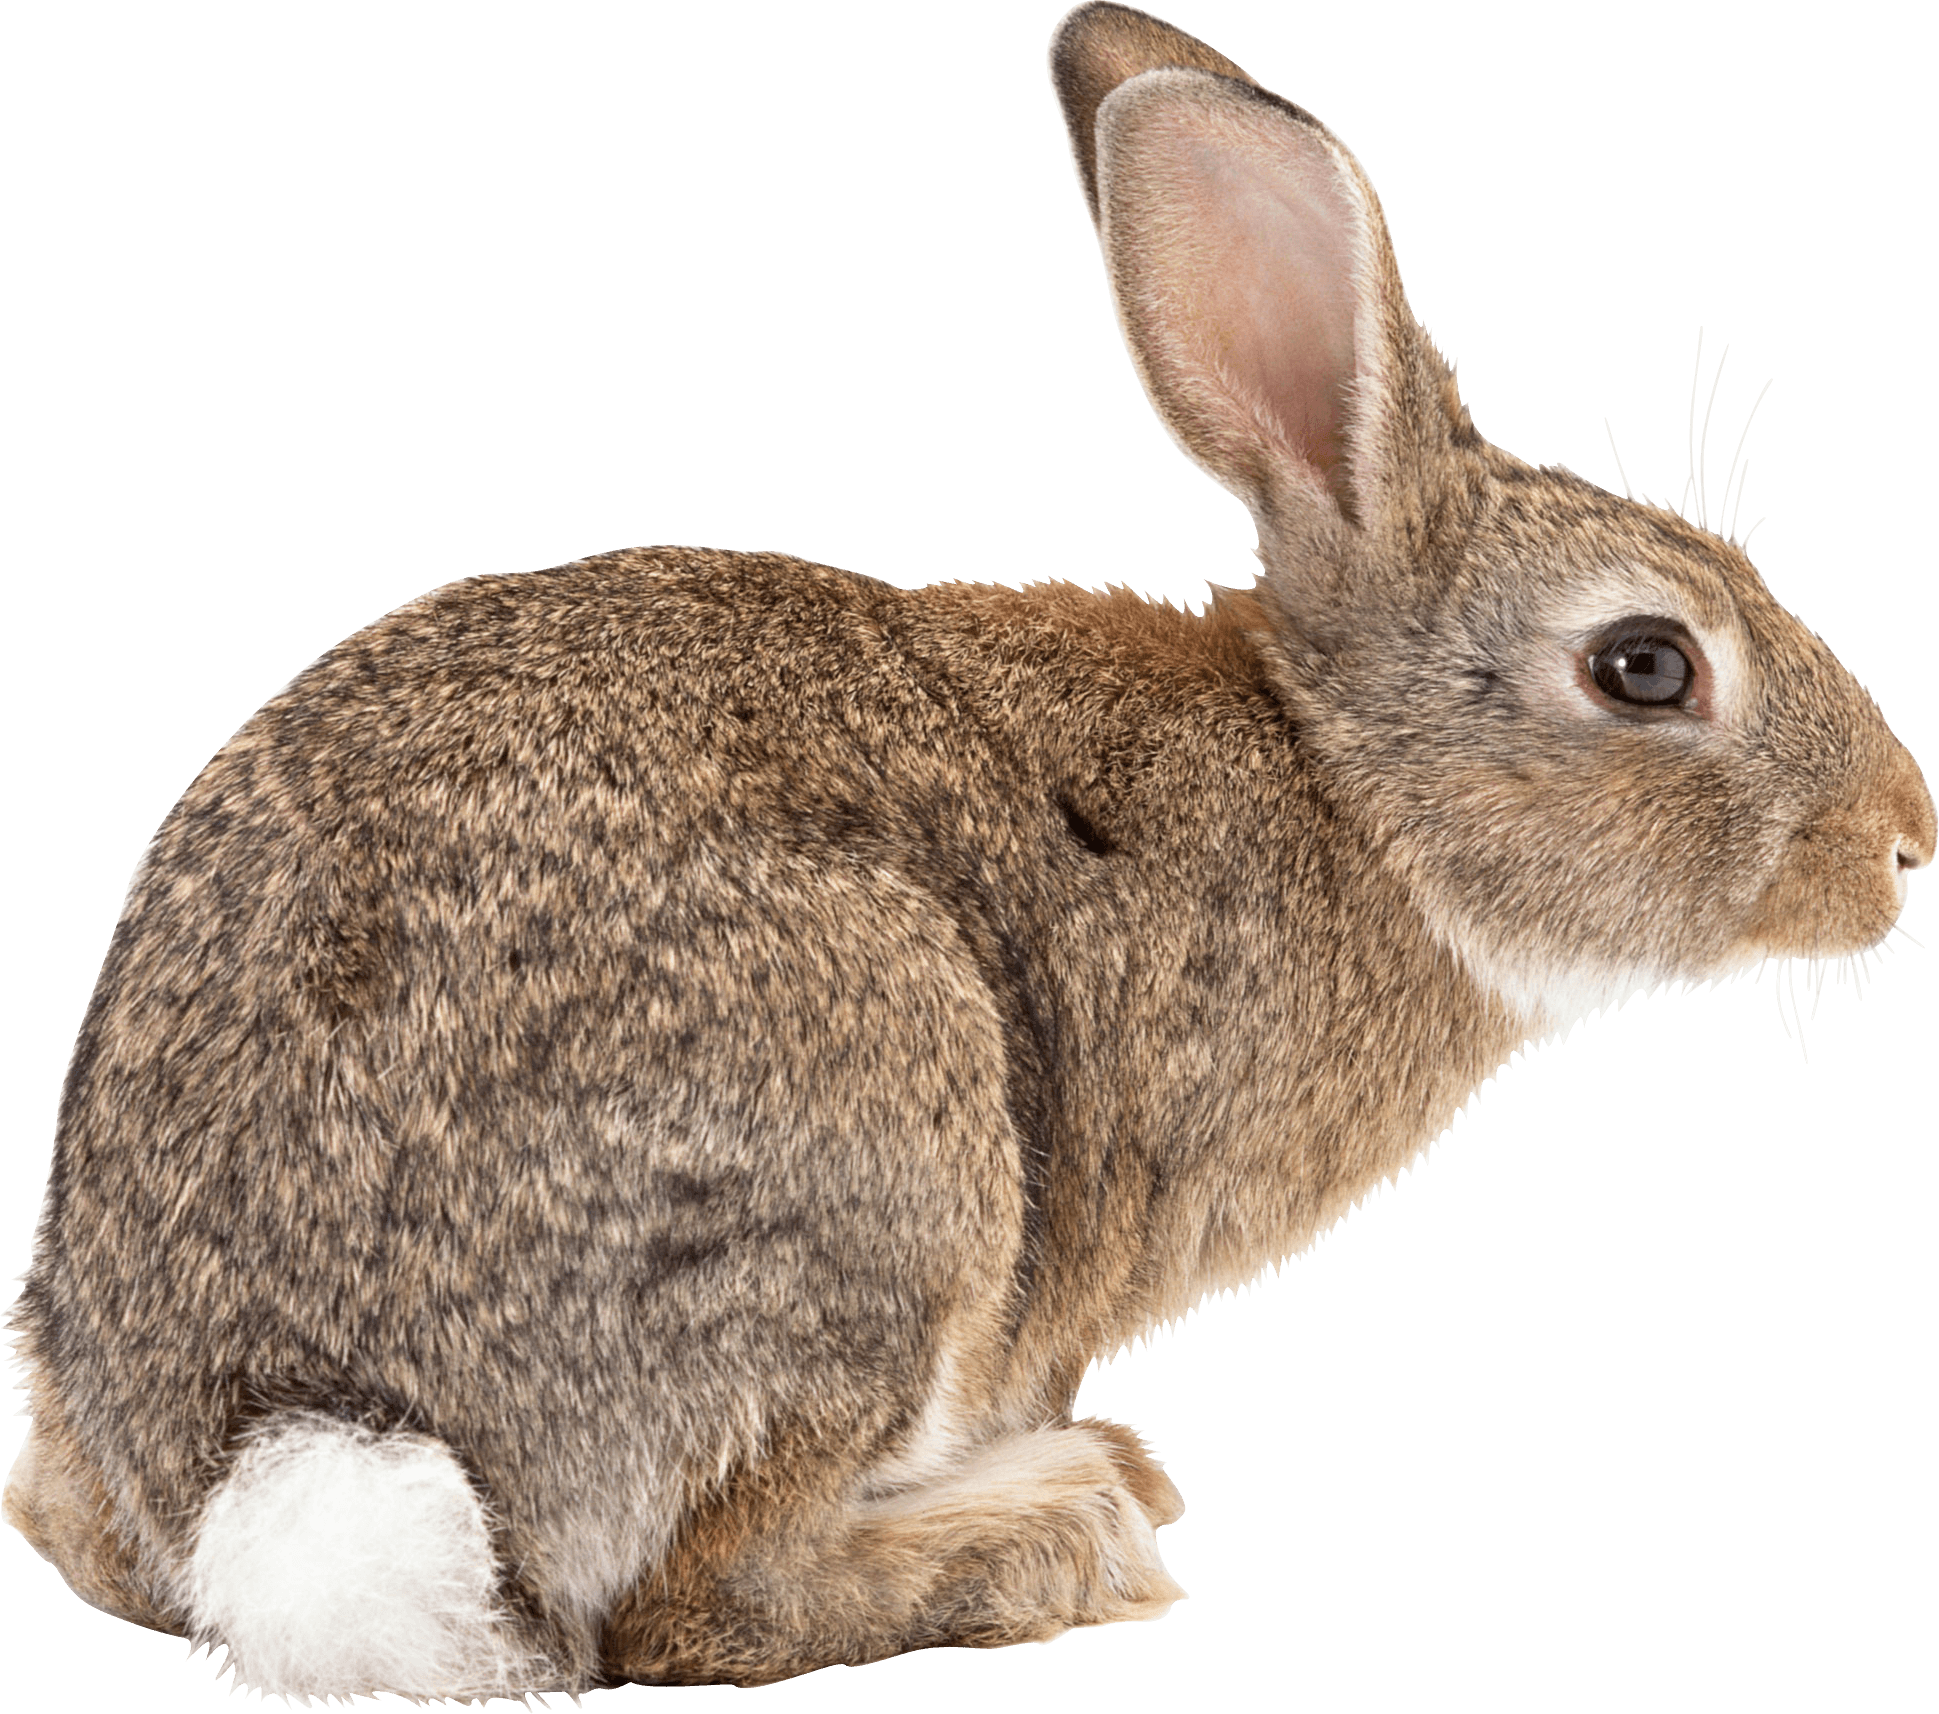 Free Download Rabbit Png Images image #40318